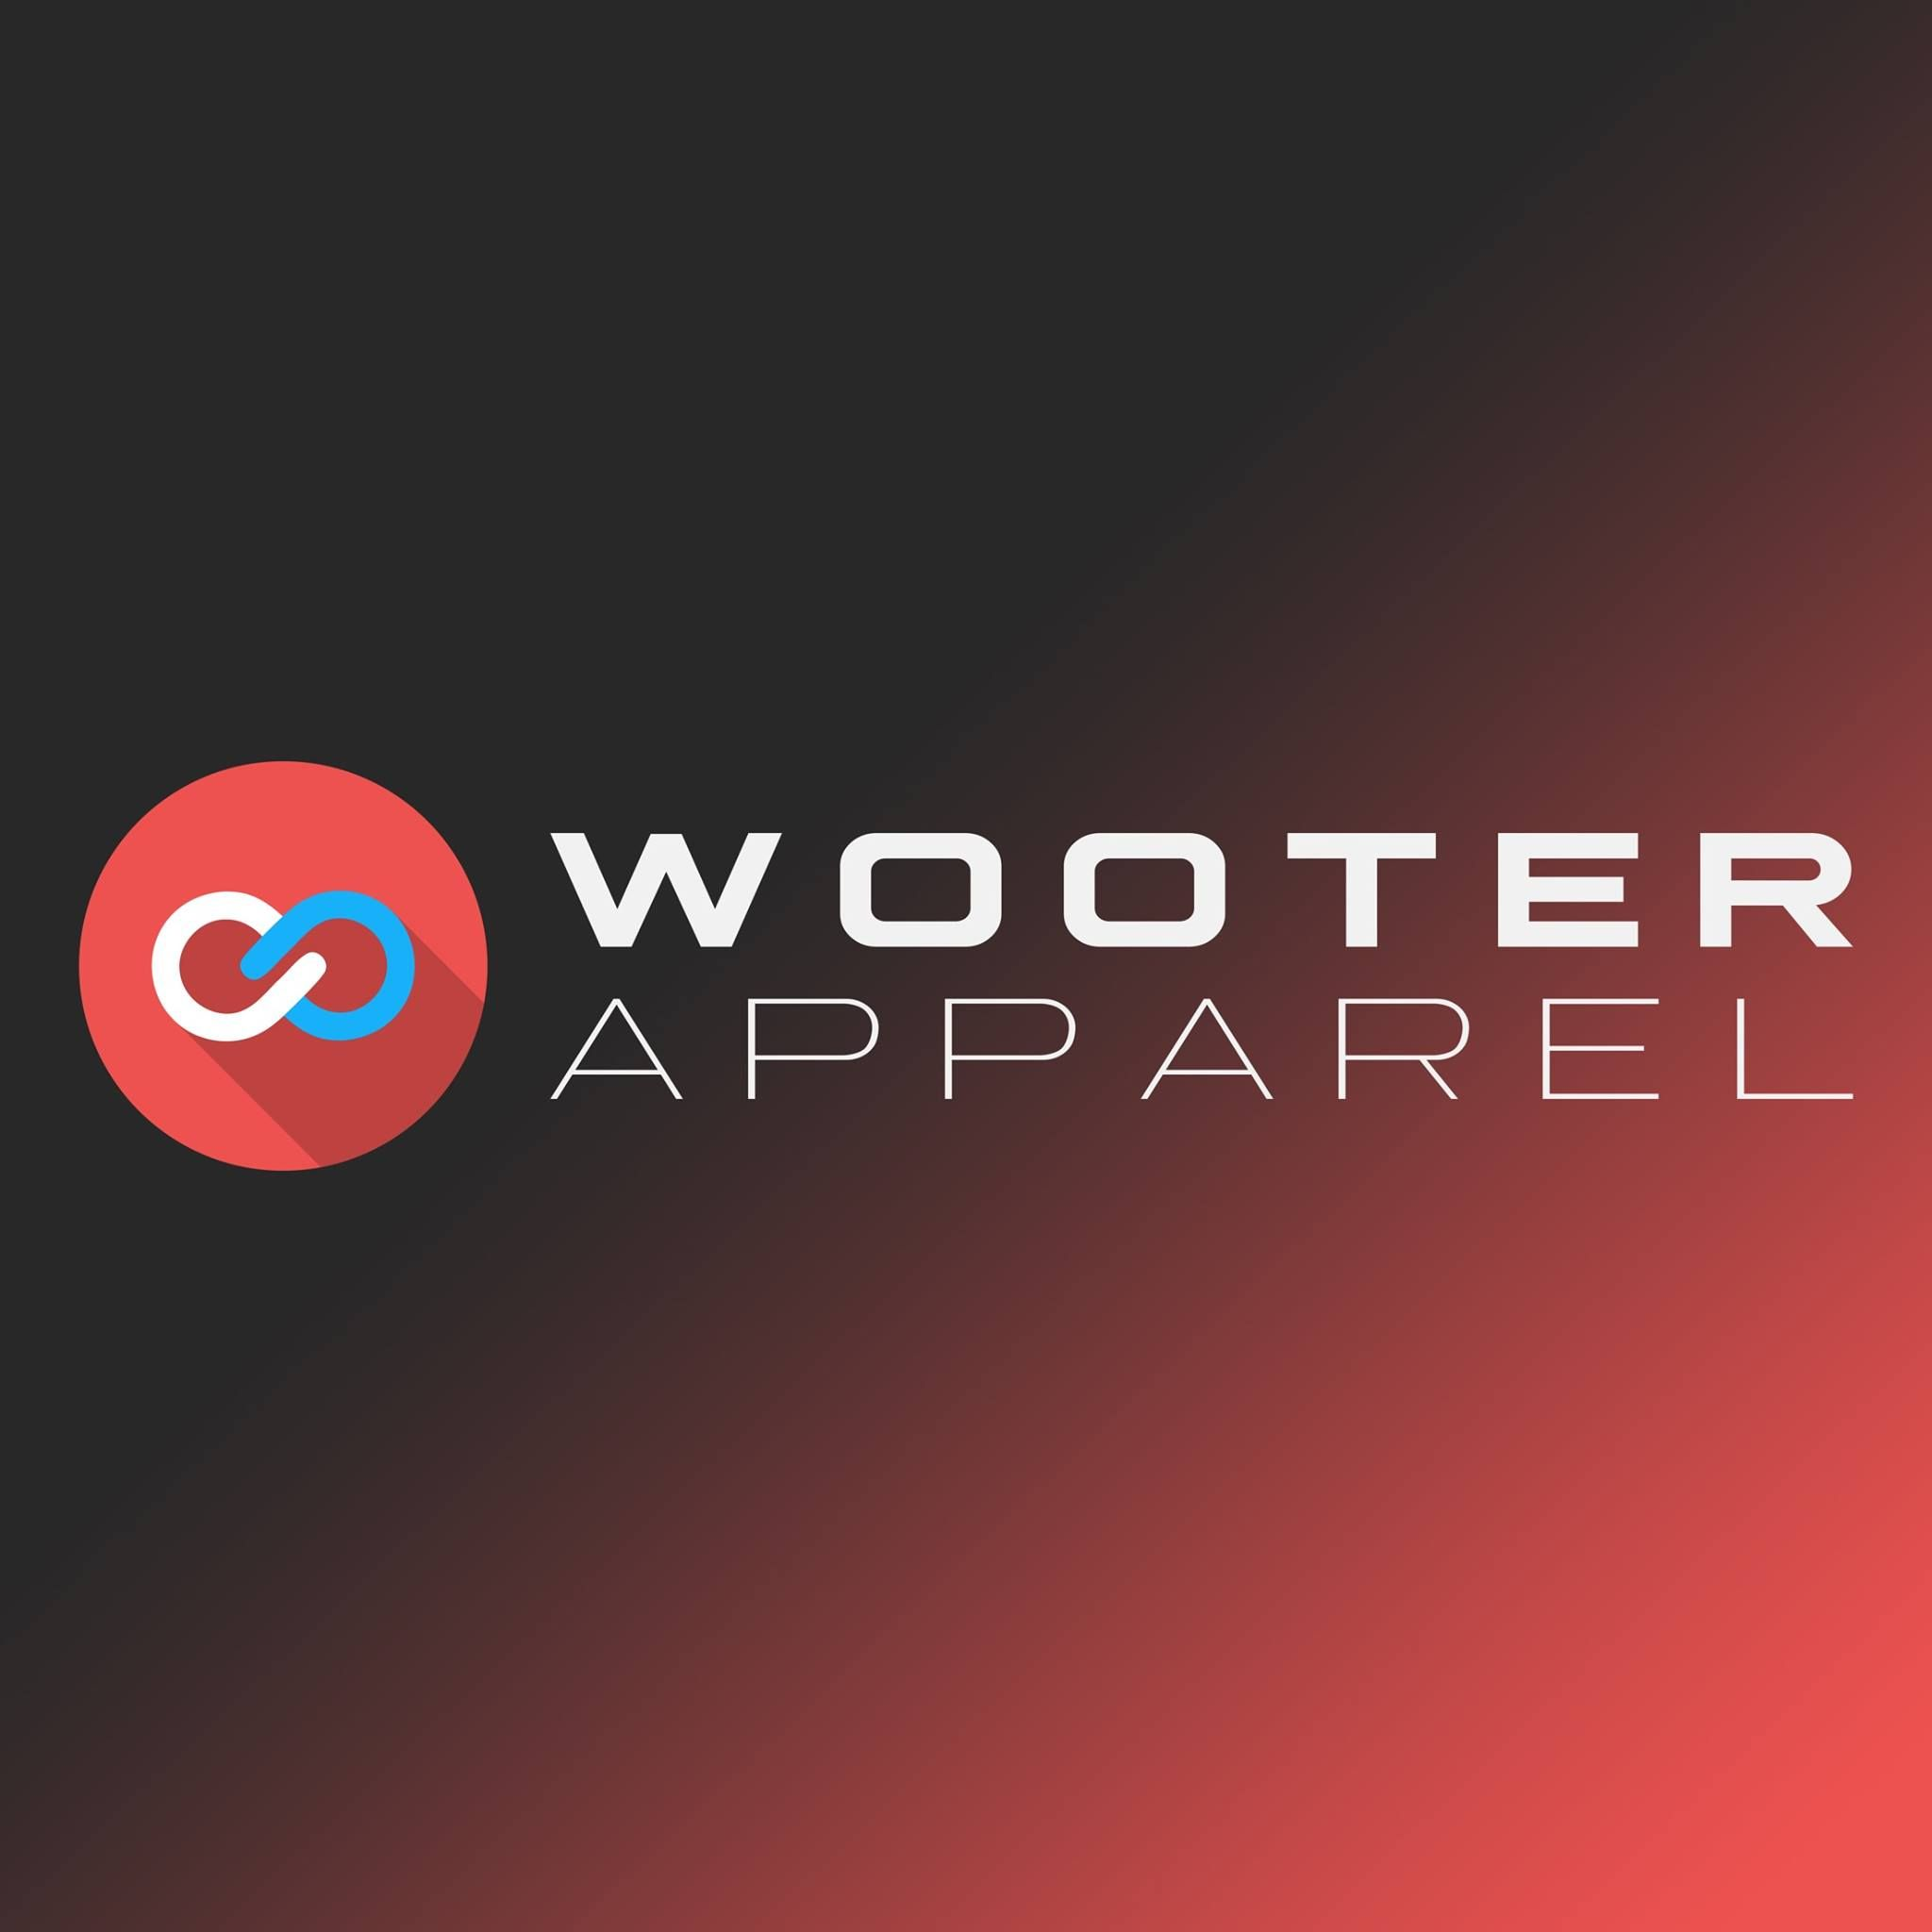 Wooter